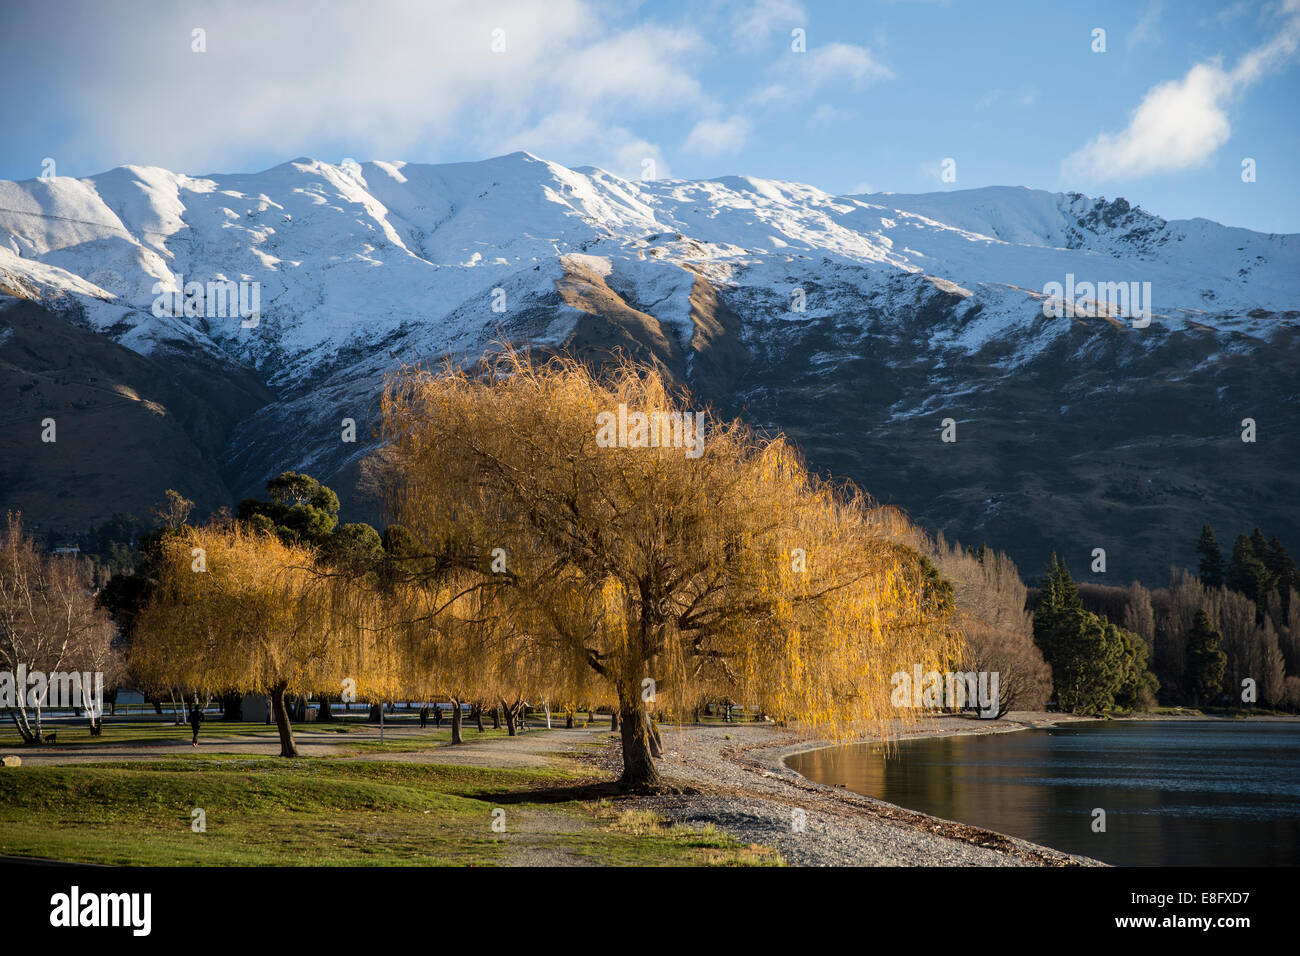 New Zealand, Landscape with snowcapped mountains - Stock Image